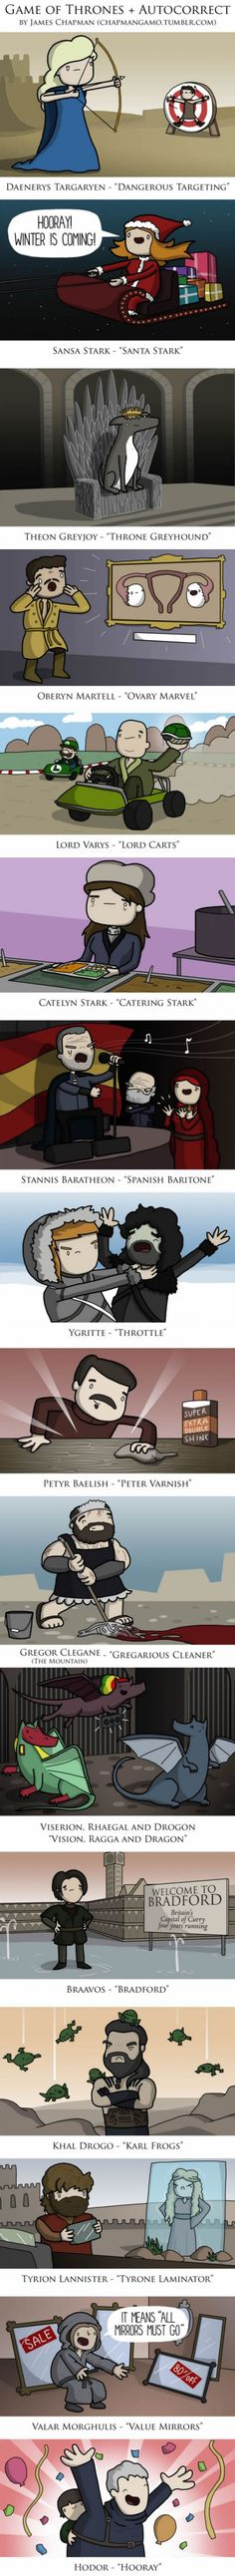 Game of Thrones + Autocorrect (By James Chapman) | 9GAG